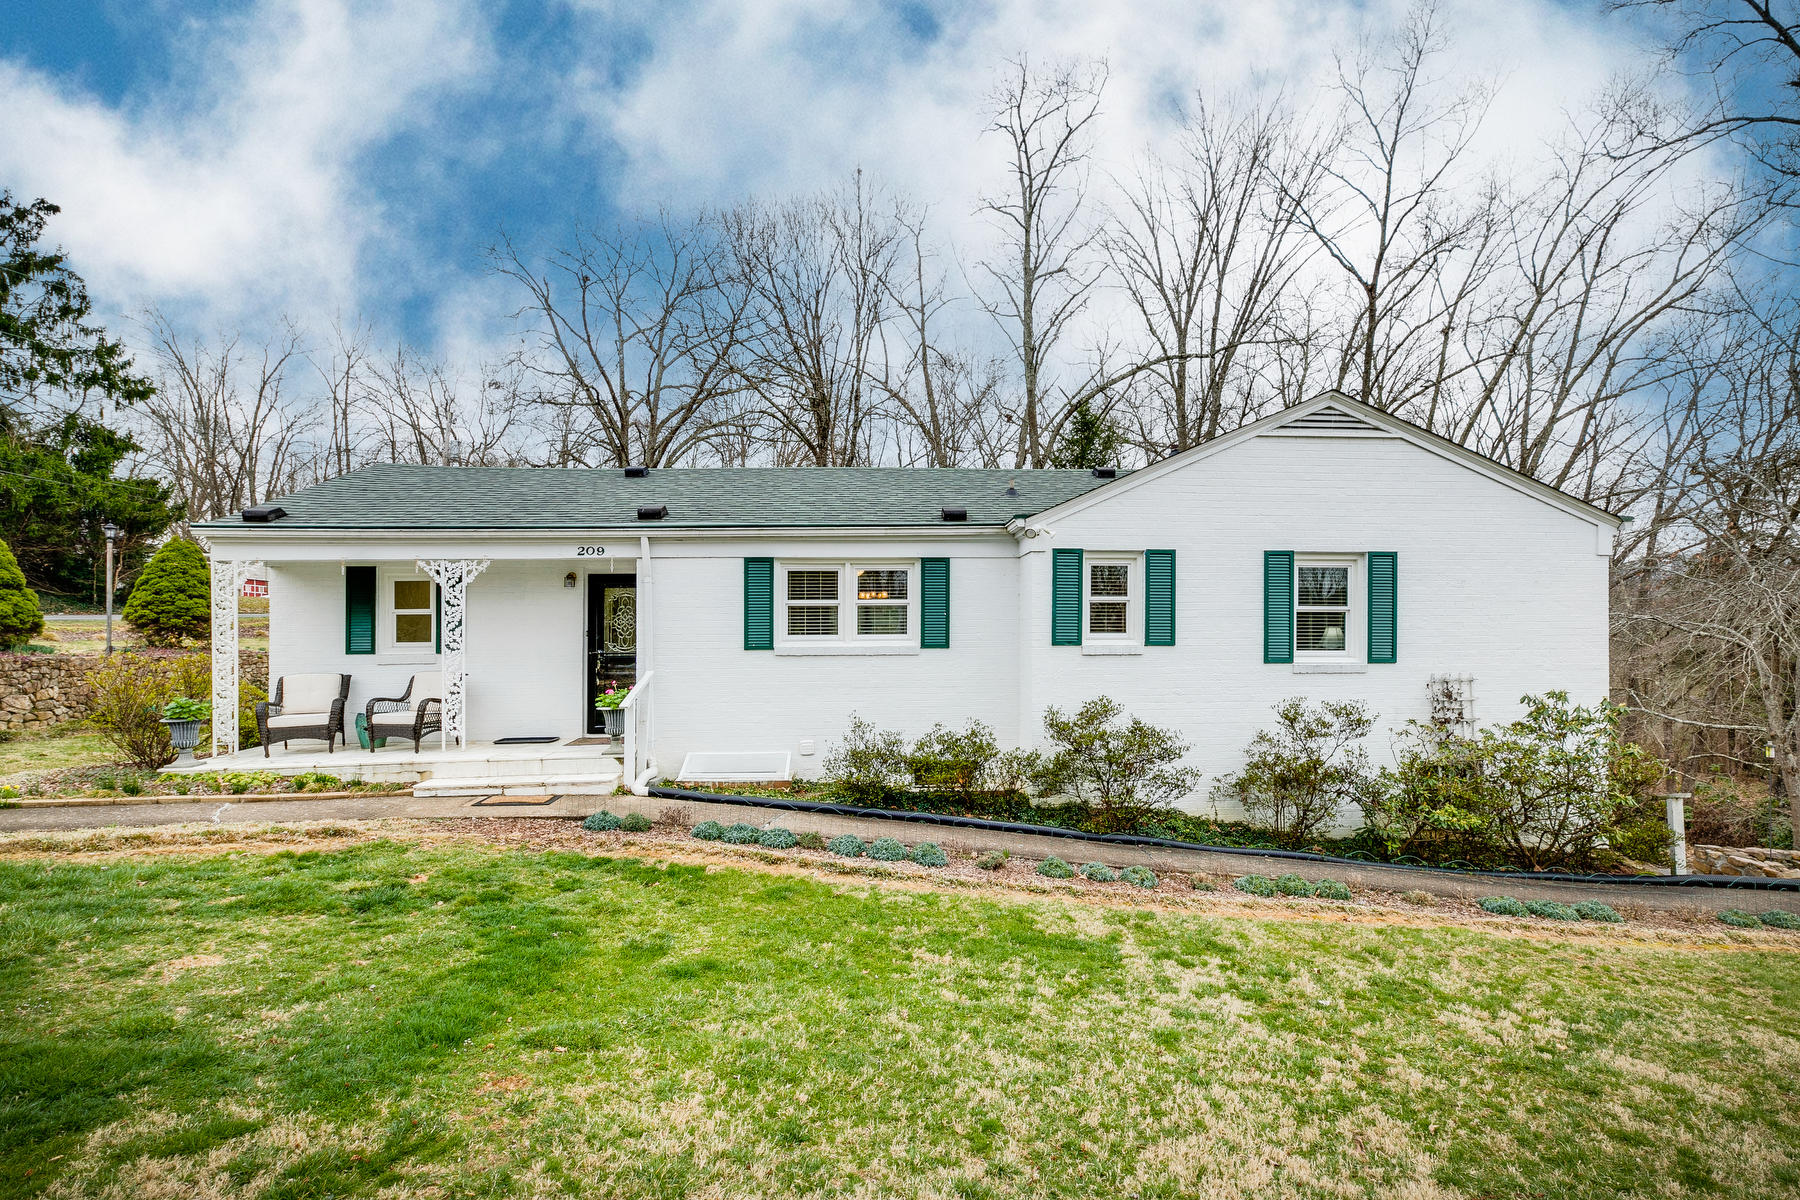 209 Forest Hills Drive, Kingsport, Tennessee 37663, 4 Bedrooms Bedrooms, ,3 BathroomsBathrooms,Single Family,For Sale,209 Forest Hills Drive,9919927